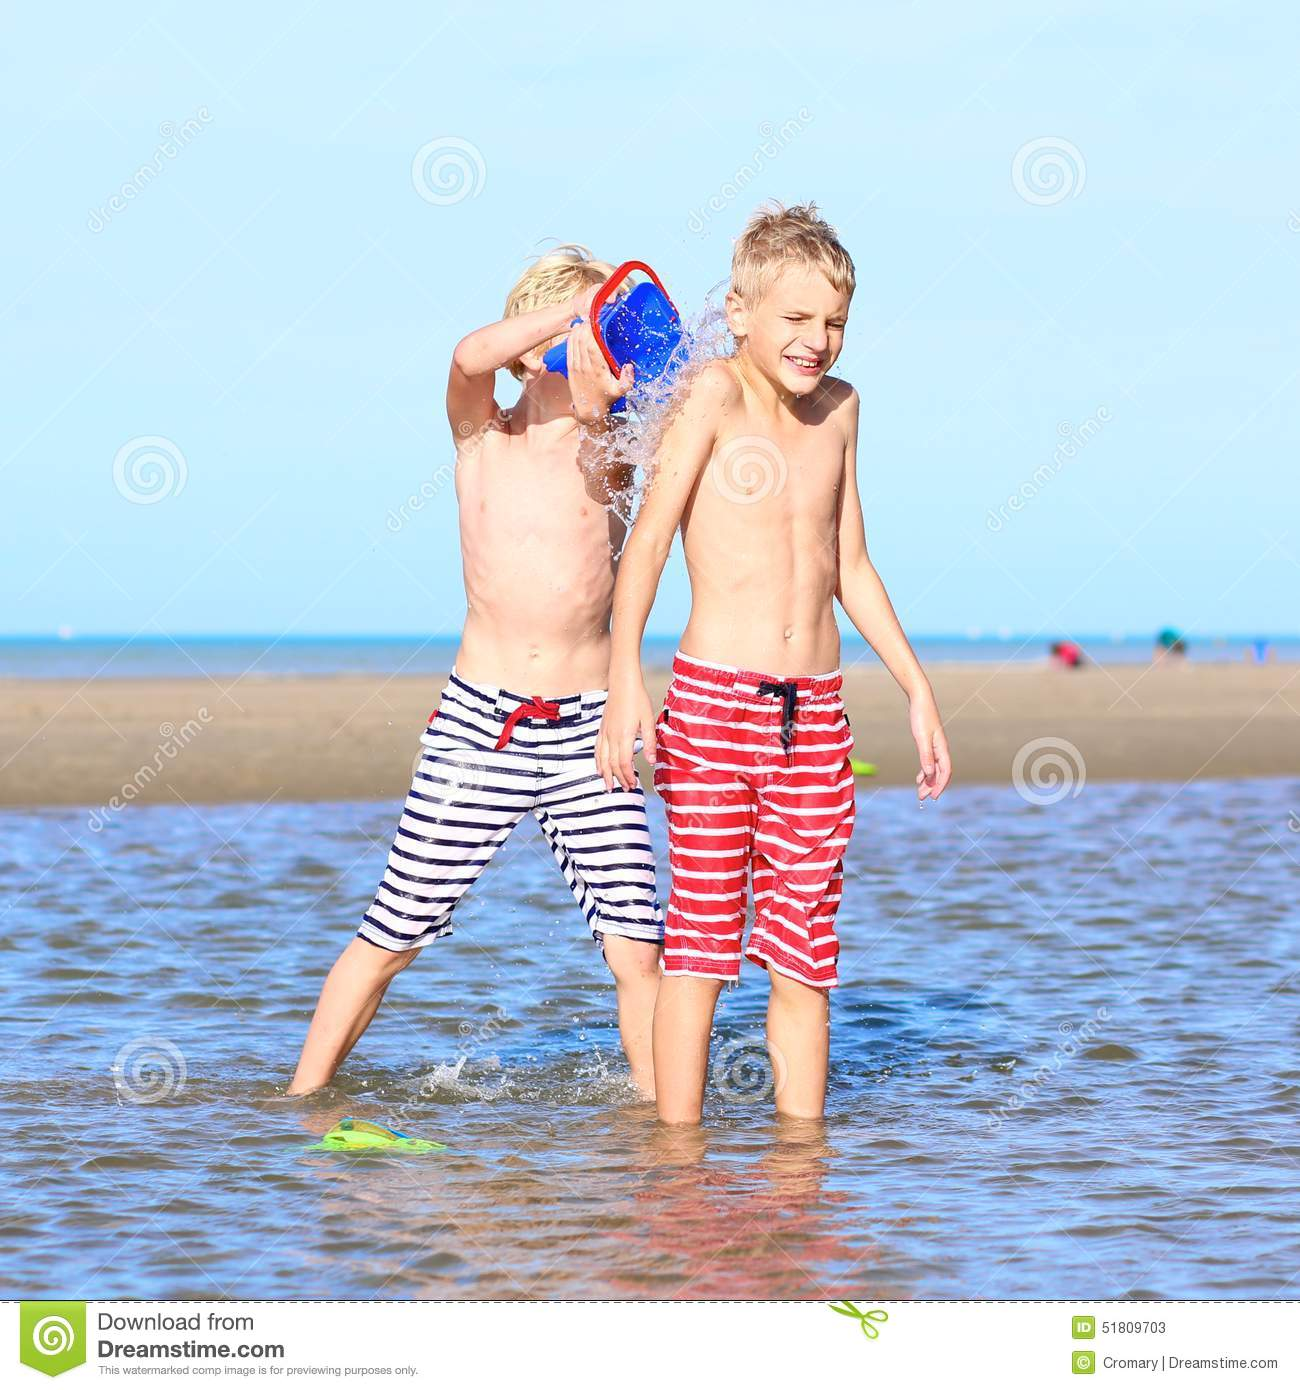 Download Twin Brothers Playing On The Beach Stock Image - Image of playful, childhood: 51809703